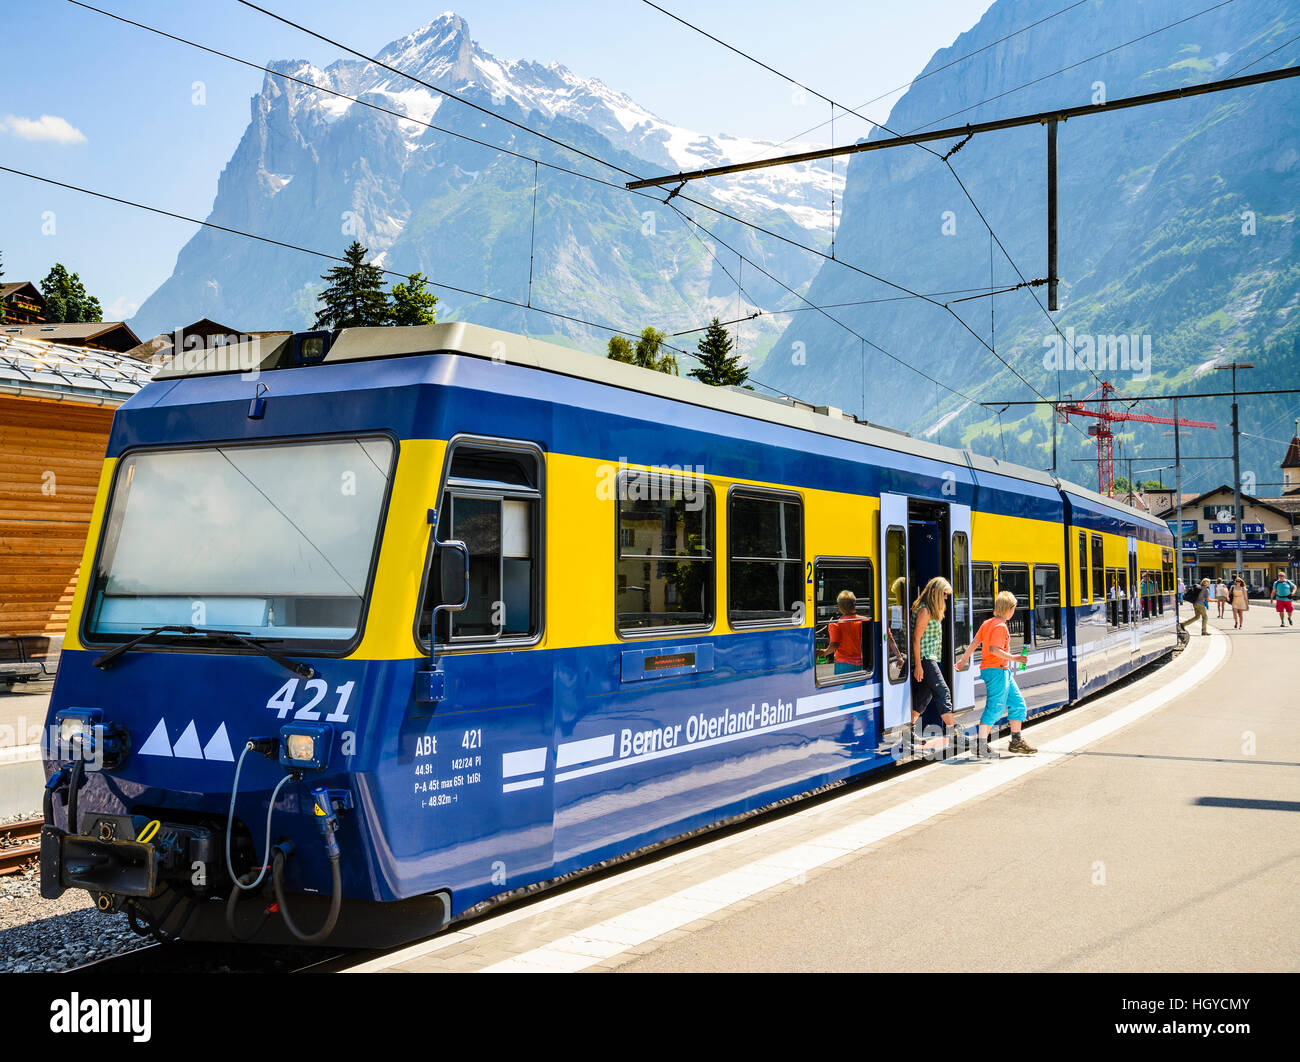 Children leave a train at Grindelwald Switzerland with the Wetterhorn peak behind - Stock Image